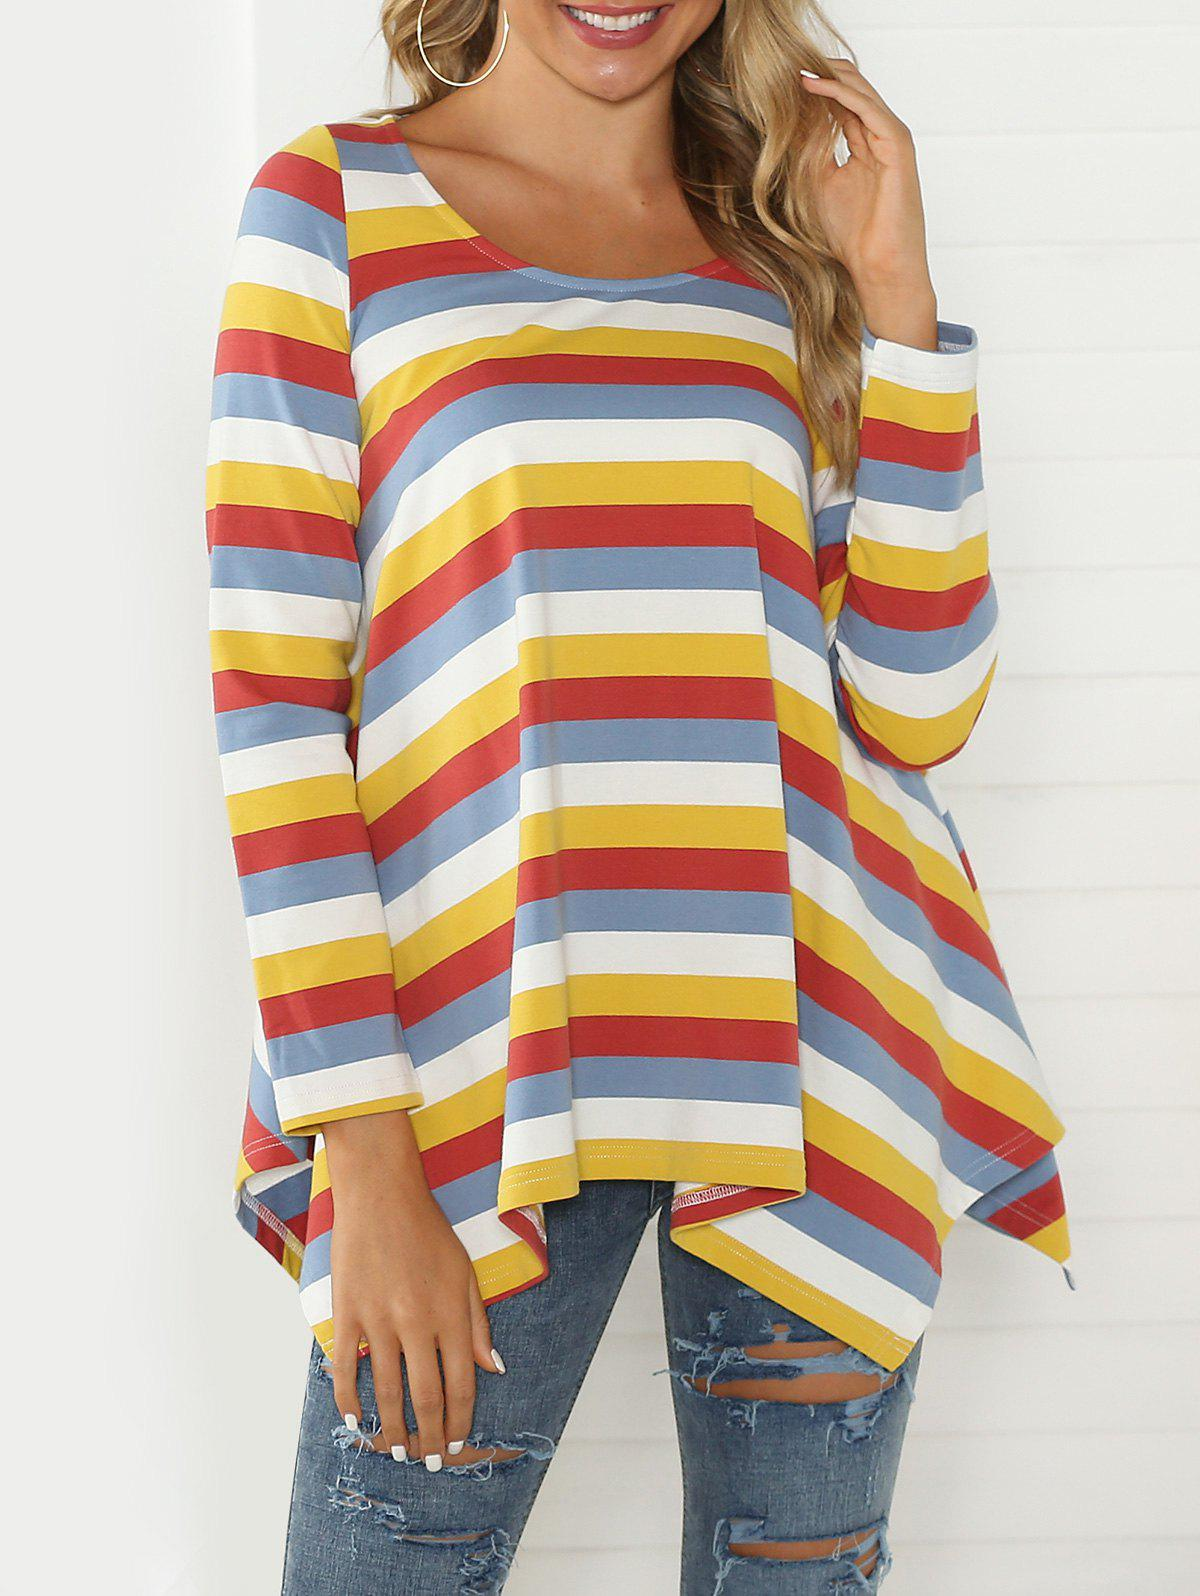 Striped Print Hanky Hem T-shirt - multicolor A L